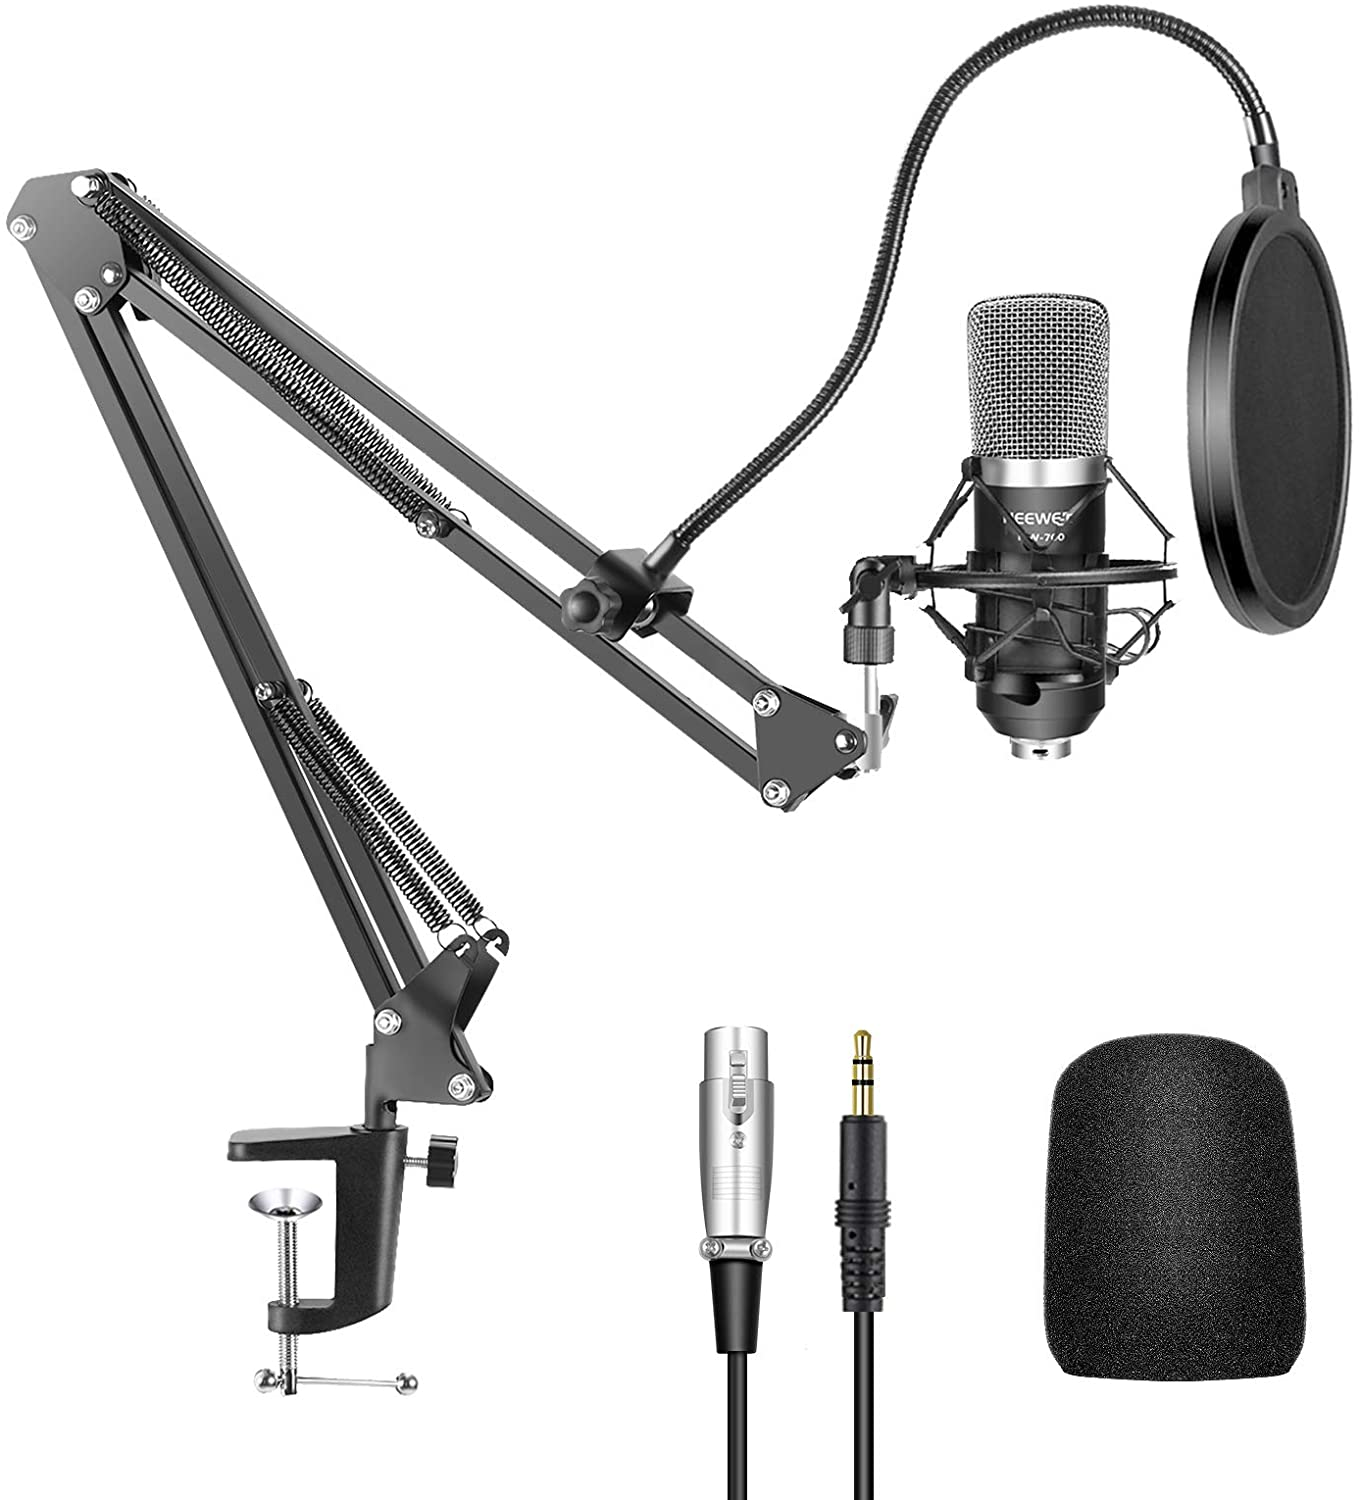 Neewer® NW-700 Professional Studio Broadcasting Recording Condenser Microphone & NW-35 Adjustable Recording Microphone Suspension Scissor Arm Stand with Shock Mount and Mounting Clamp Kit